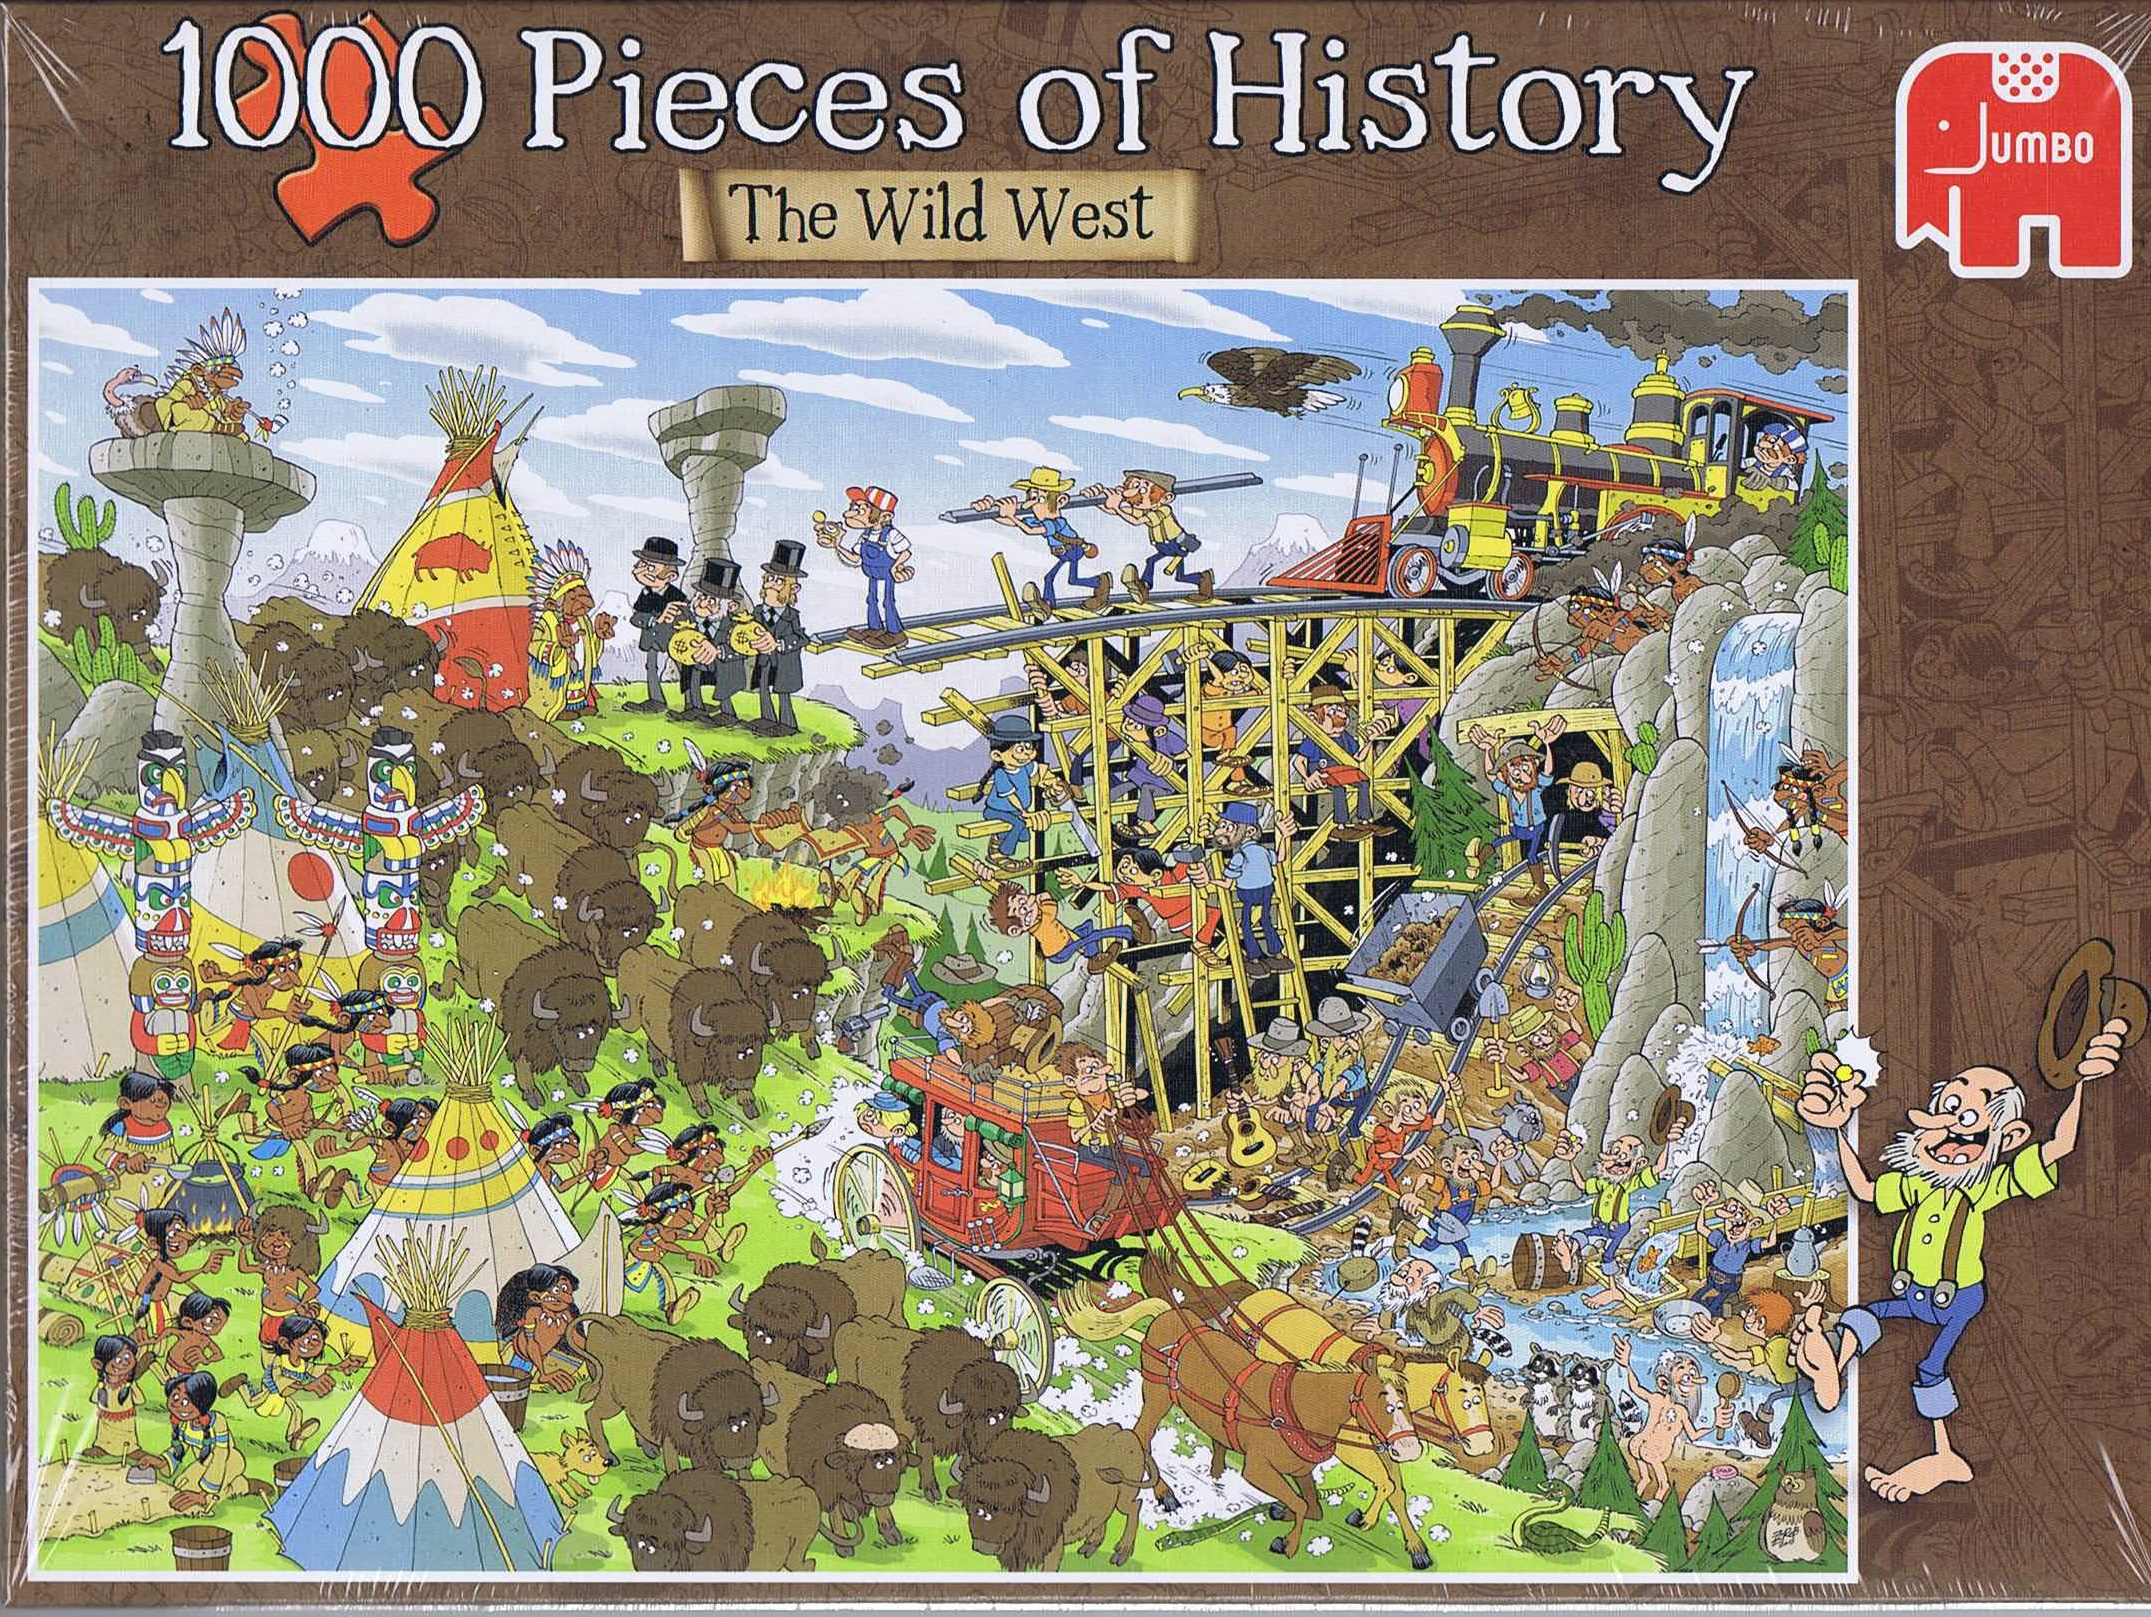 Image of 1000 Pieces of History - The Wild West